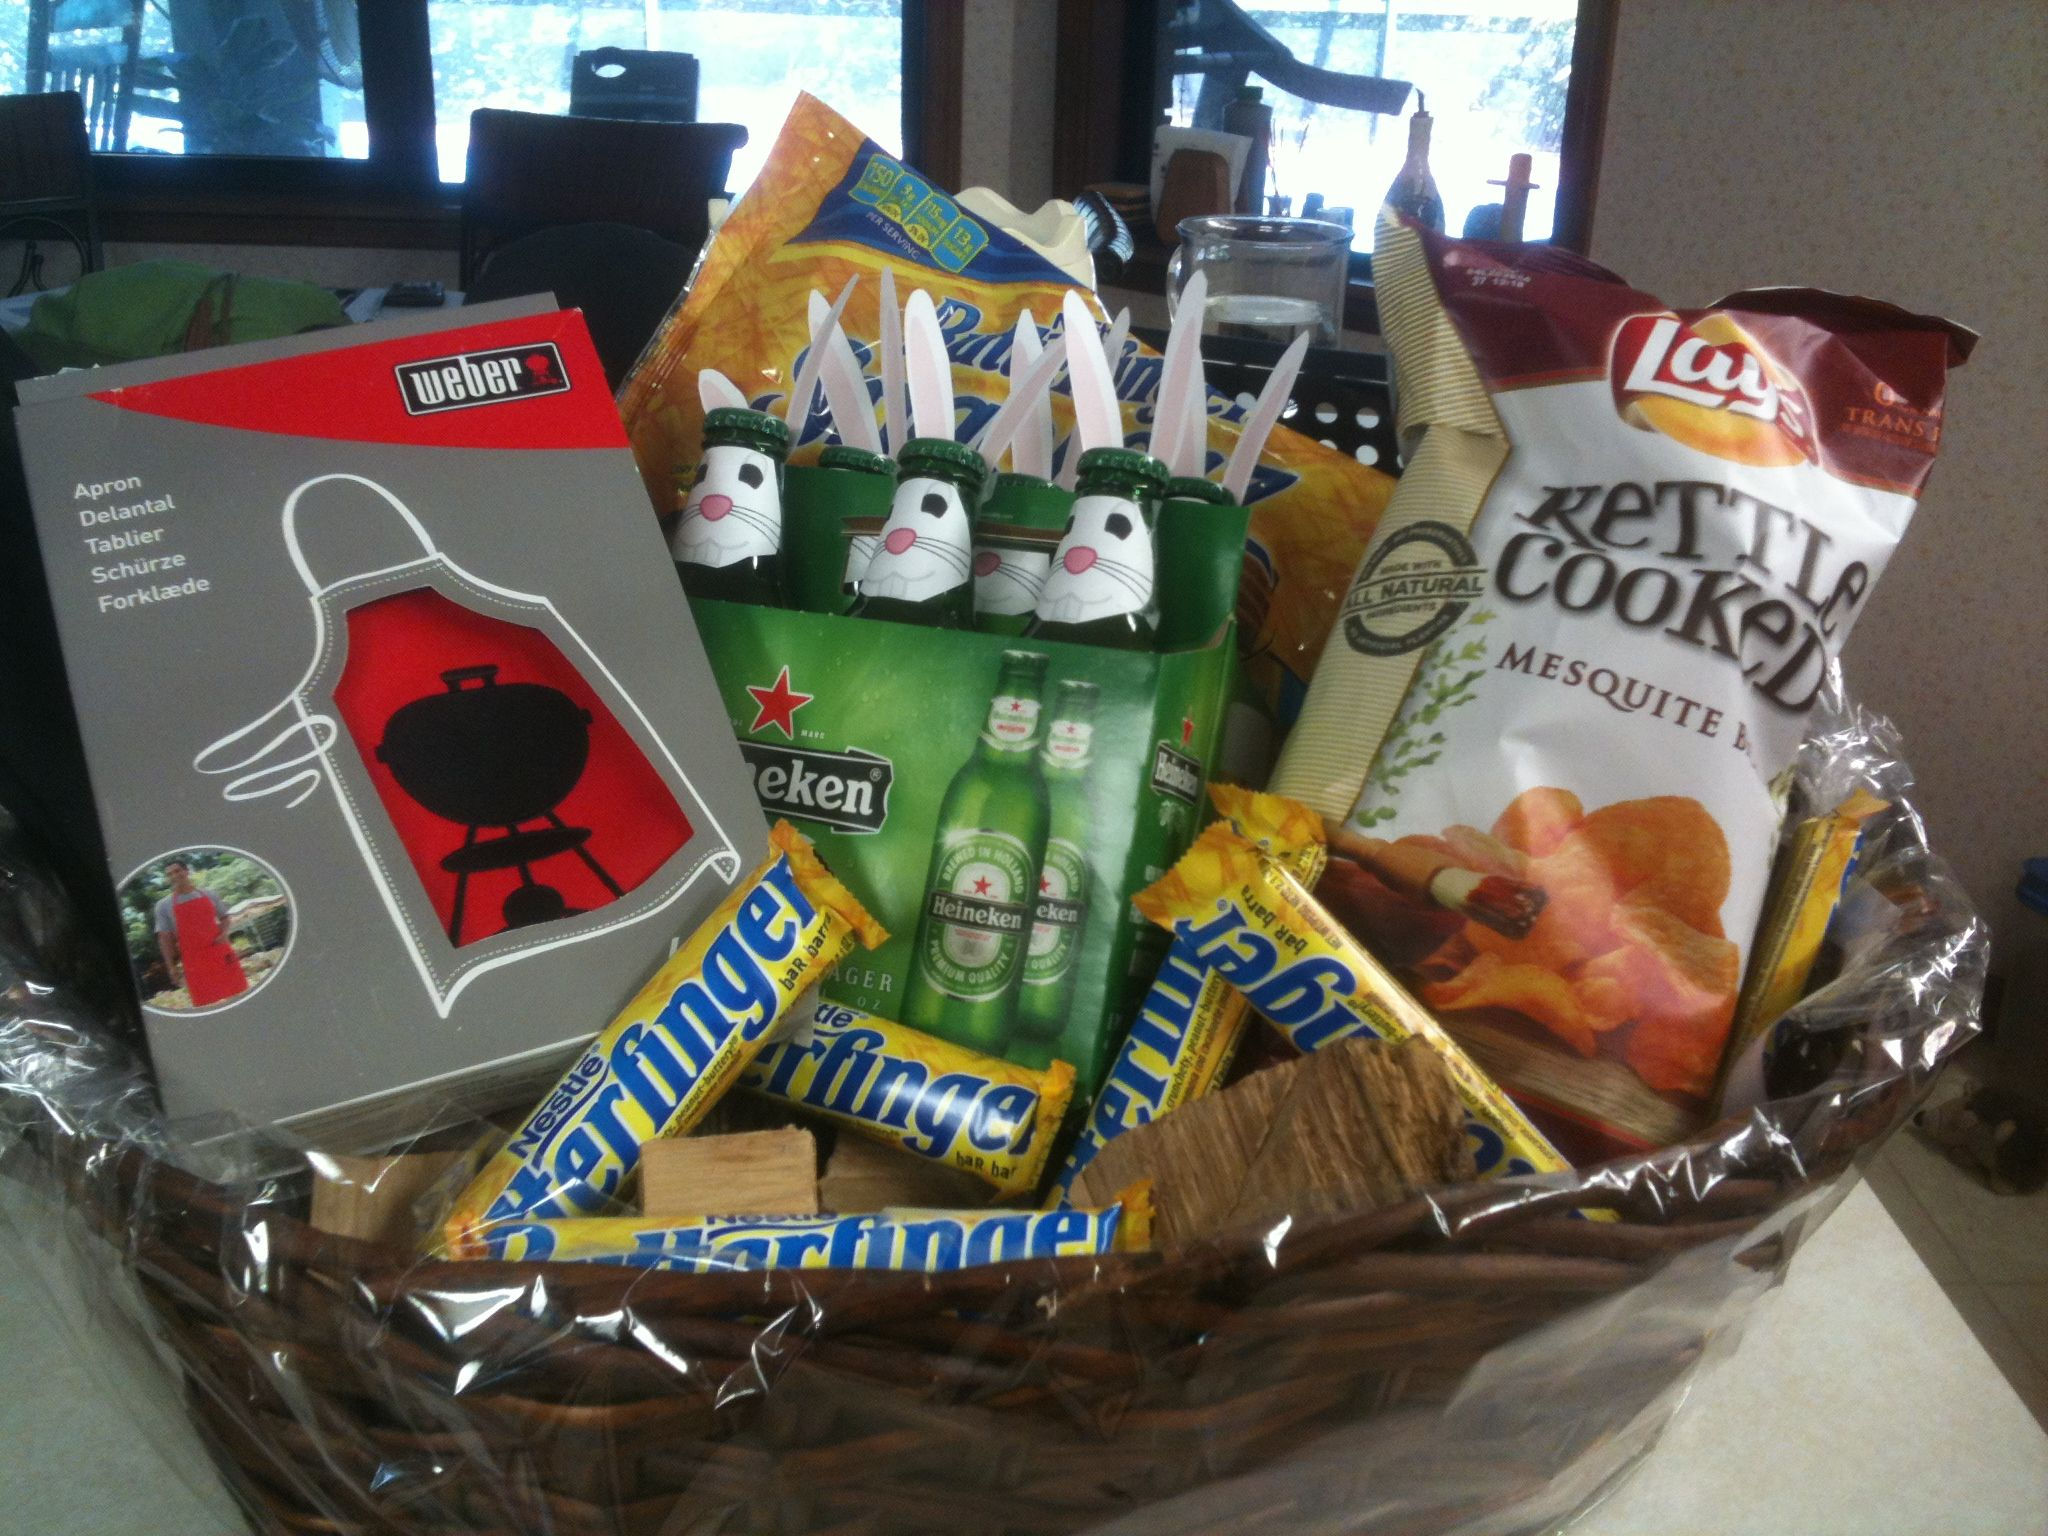 Easter basket for a man beer dressed like rabbits chips easter basket for a man beer dressed like rabbits chips butterfingers grilling negle Images